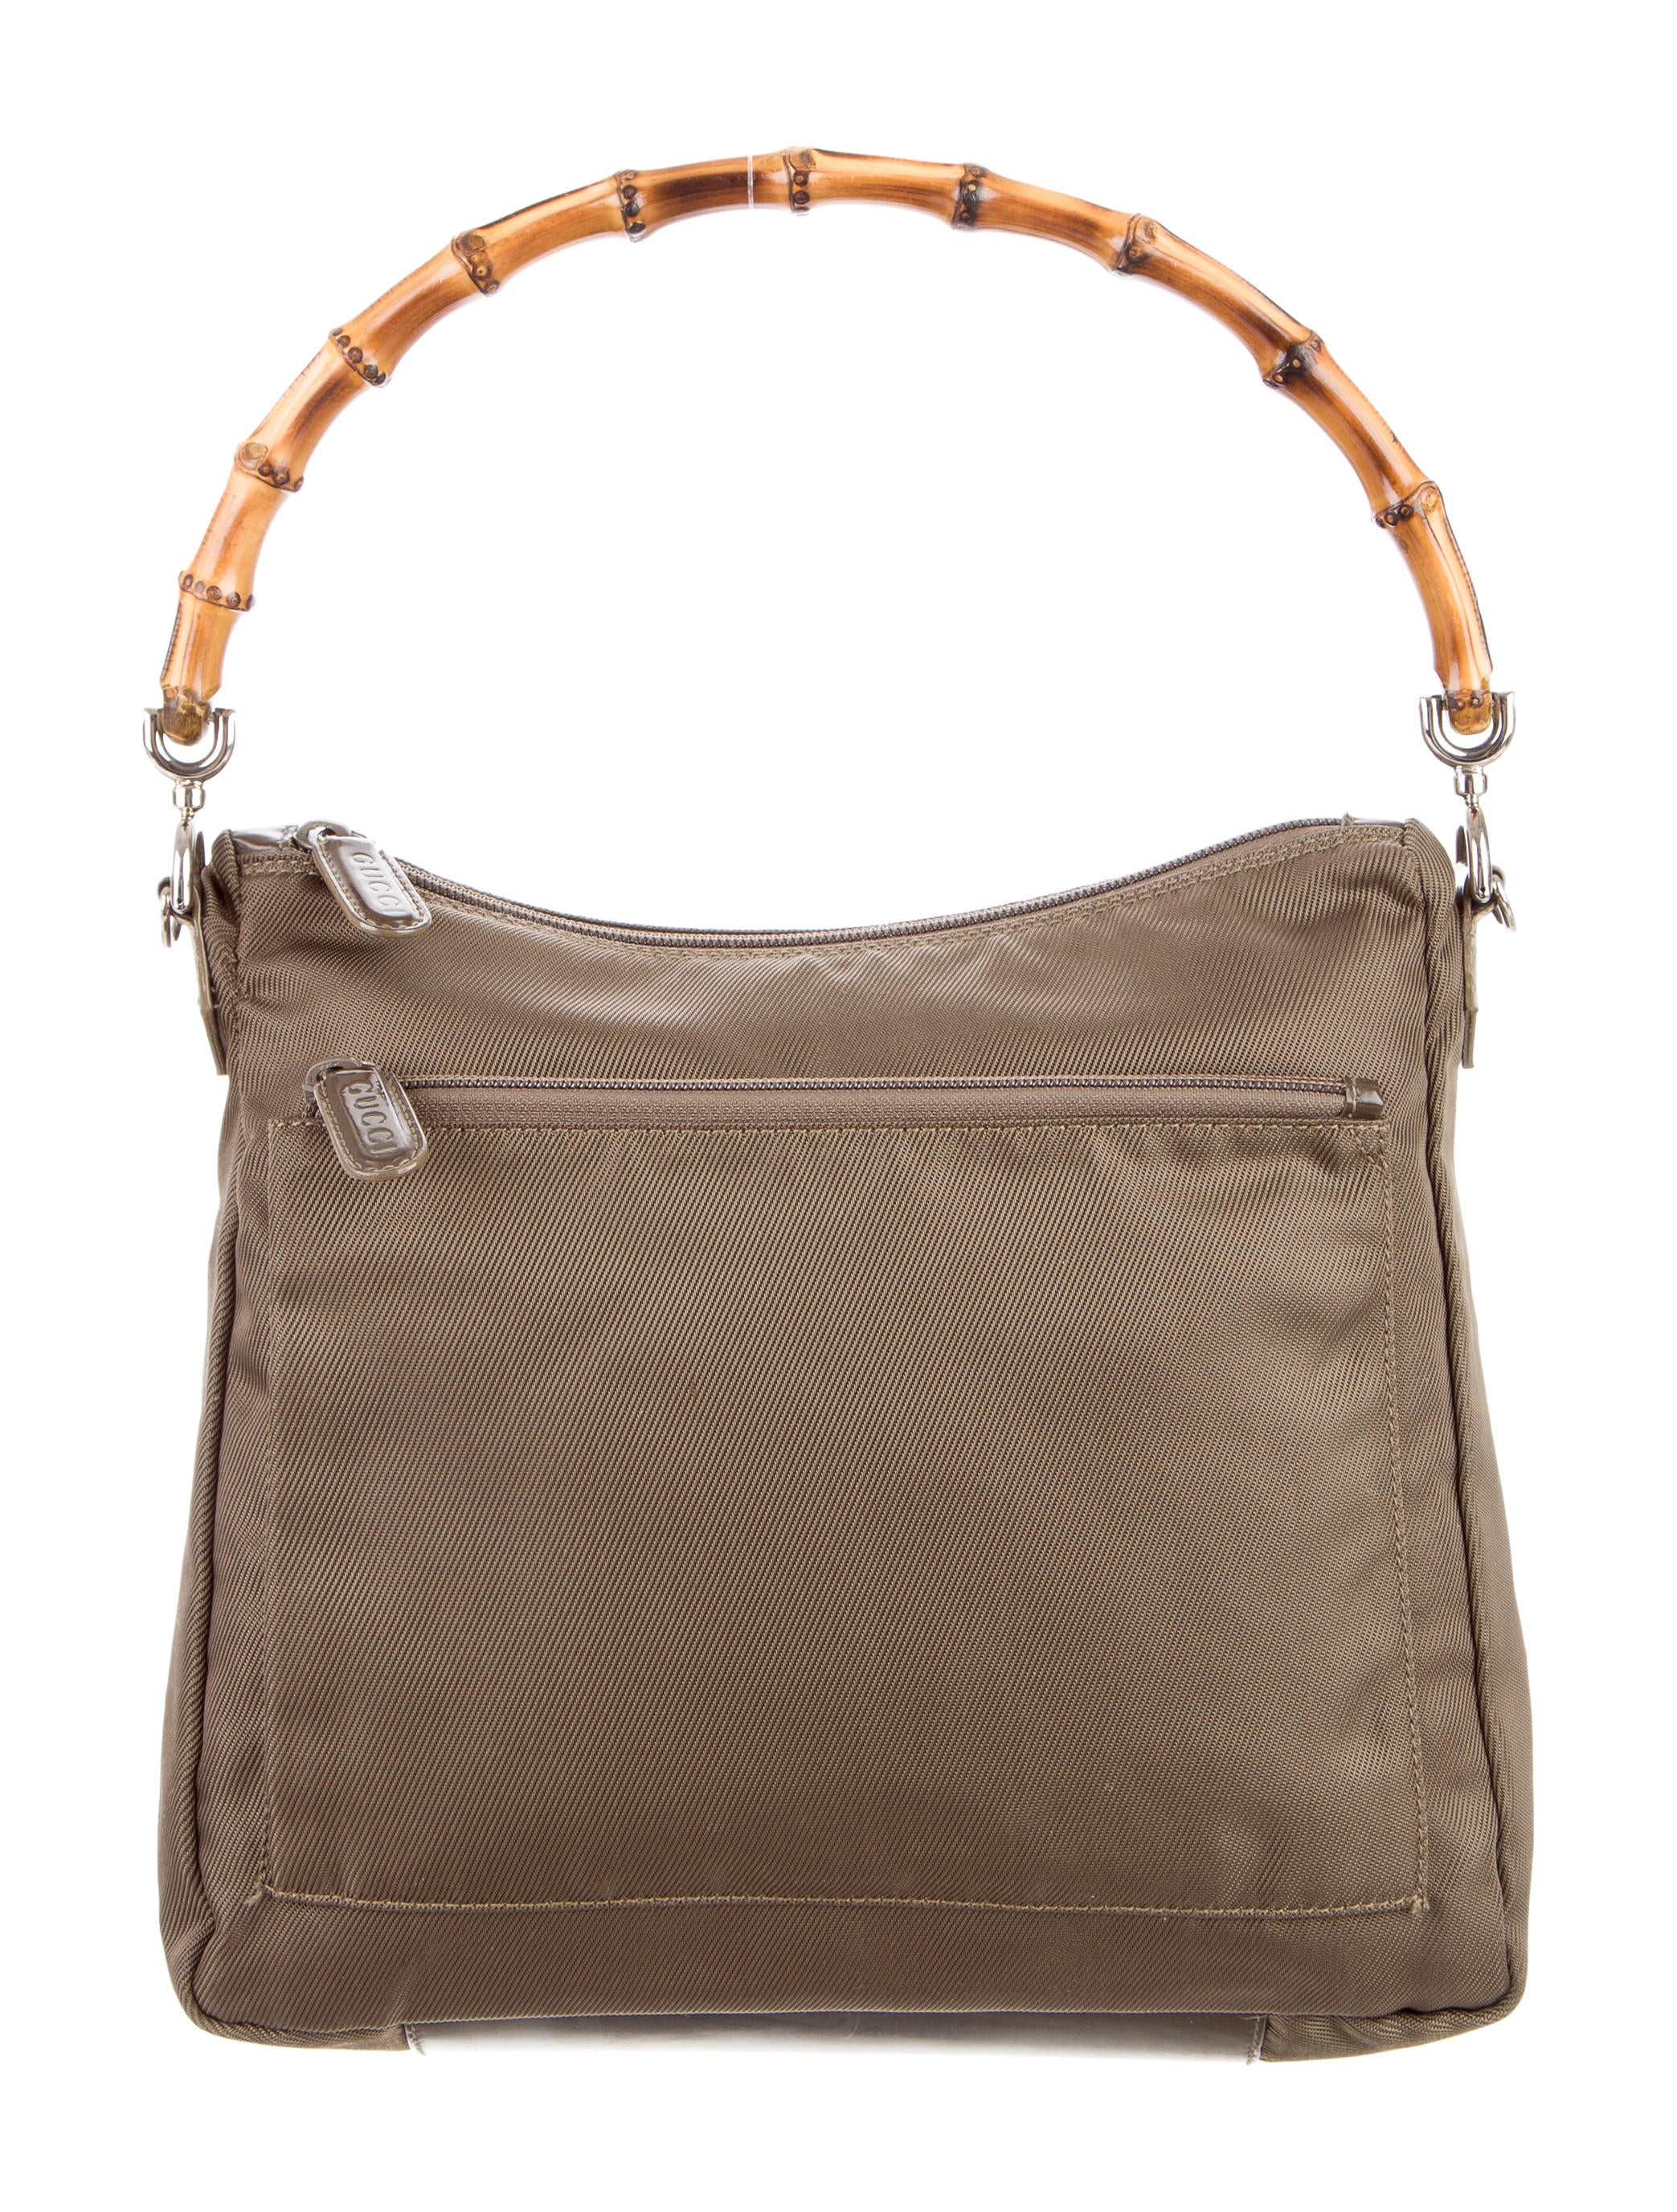 598fa071f981b7 Bamboo Line Handbag Gucci | Stanford Center for Opportunity Policy ...